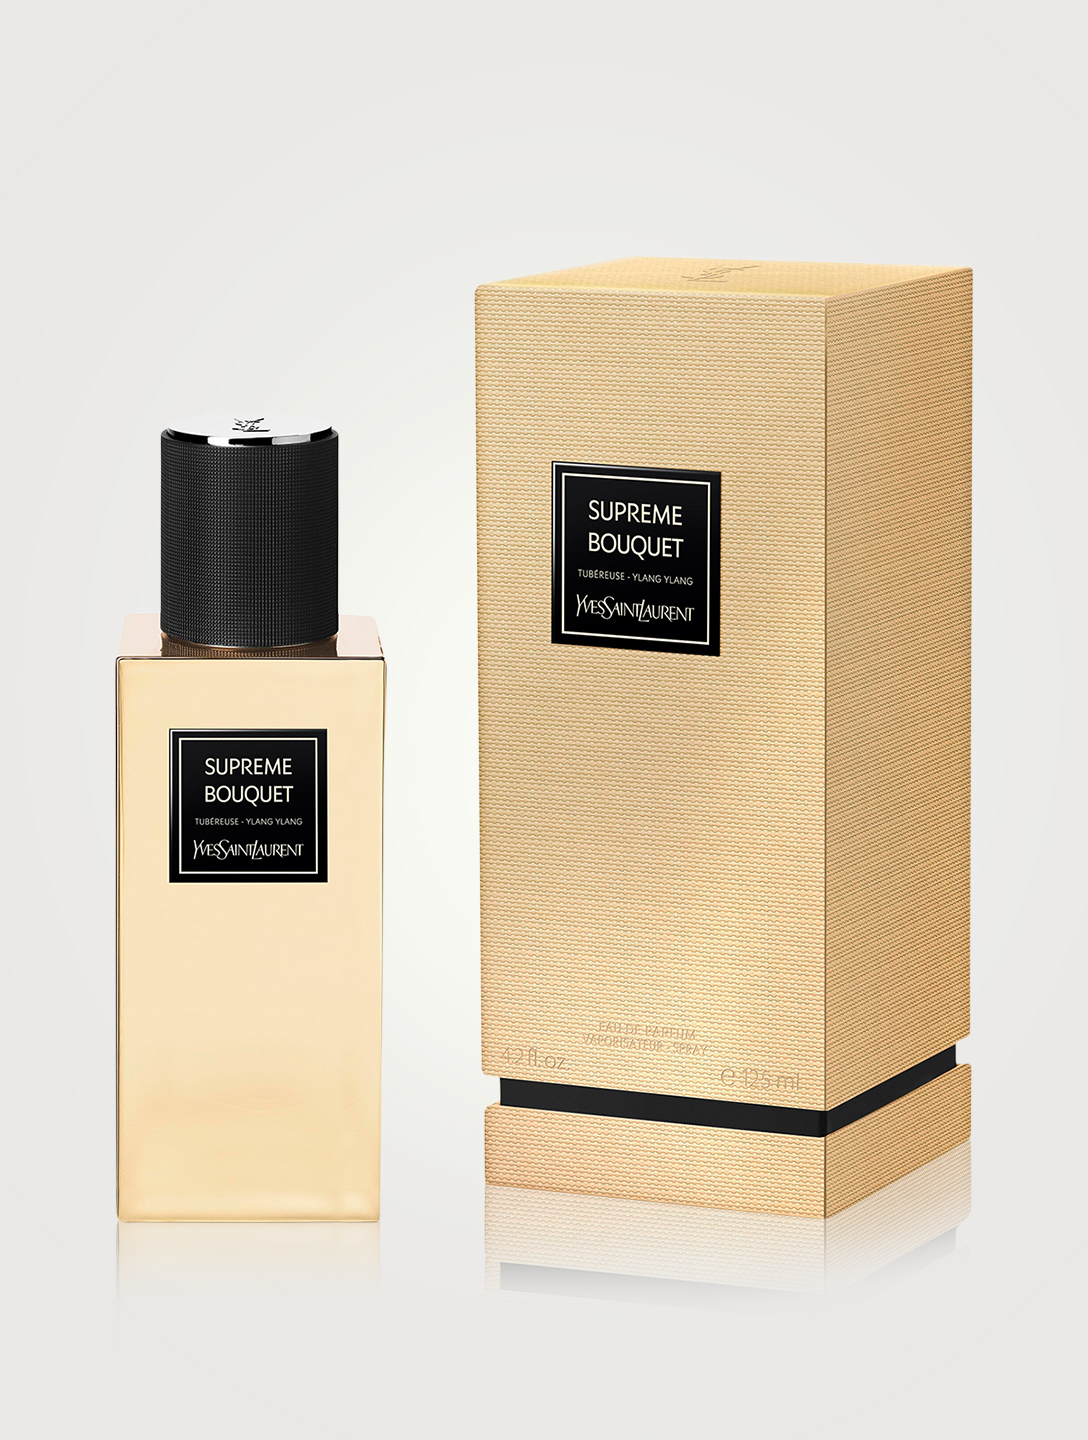 YVES SAINT LAURENT Eau de parfum Supreme Bouquet – Le Vestiaire des Parfums, Collection orientale Beauté